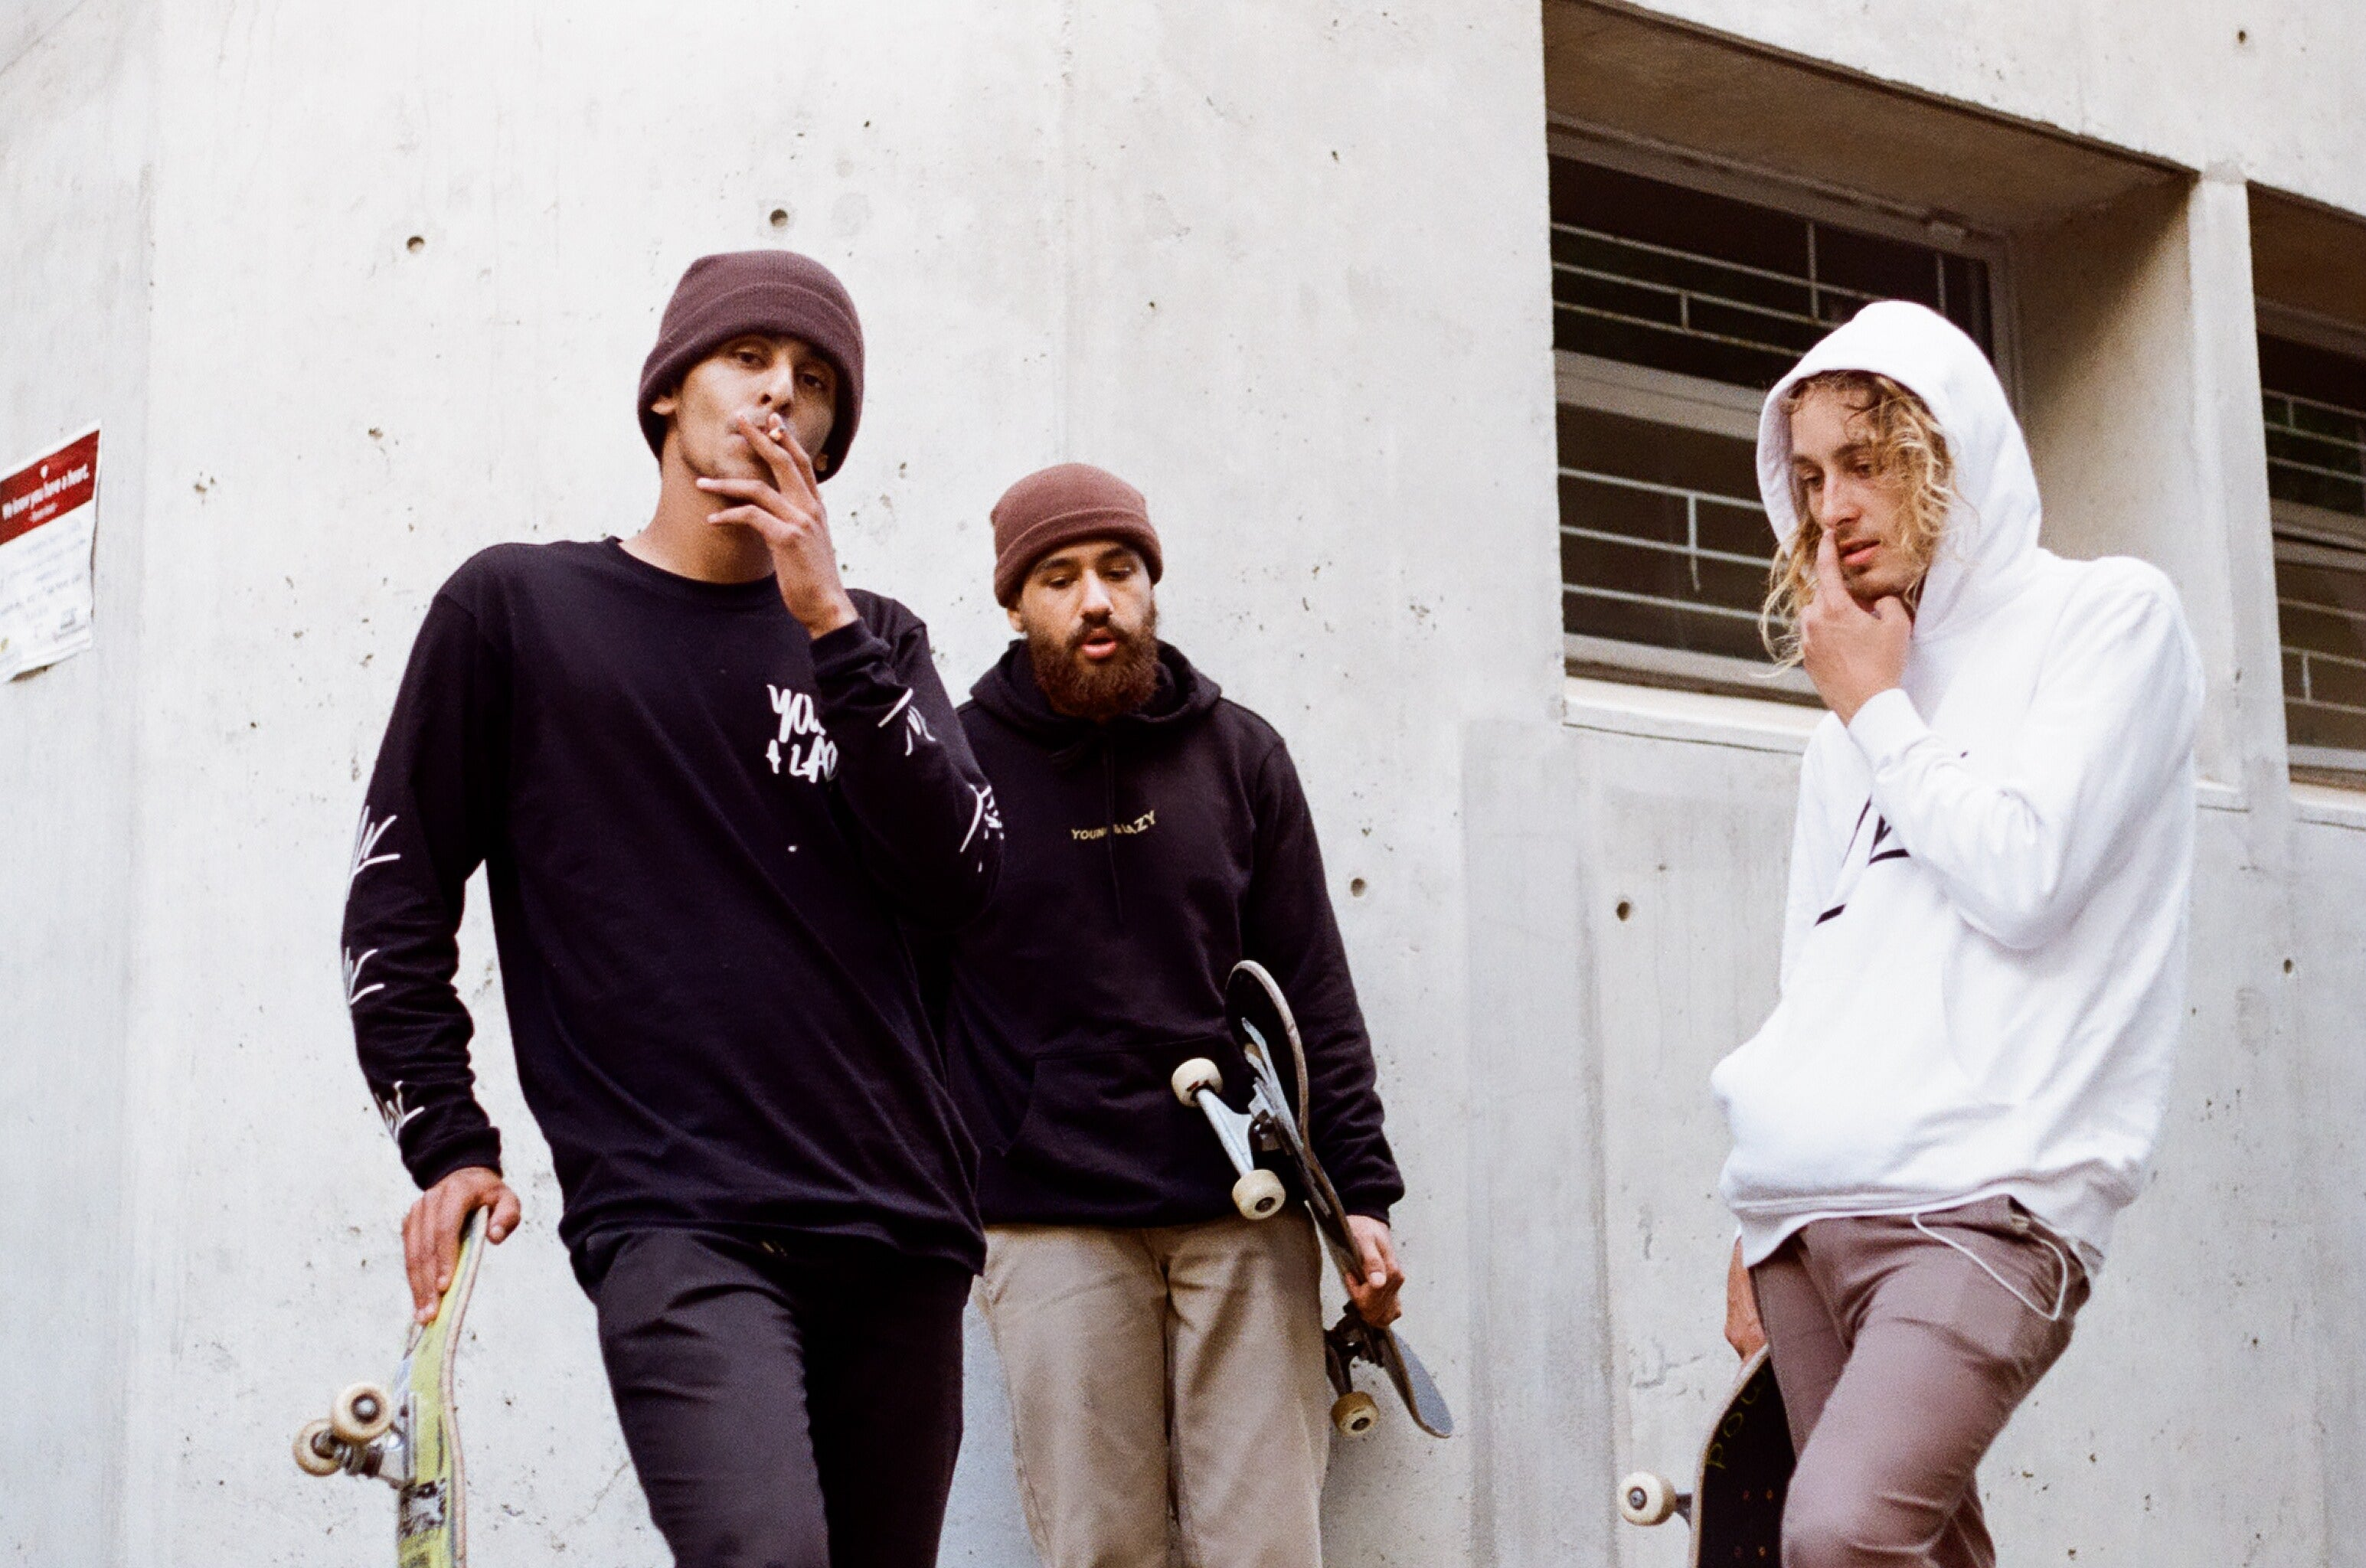 Proudly South African: 5 Local fashion brands that are dominating streetwear in SA